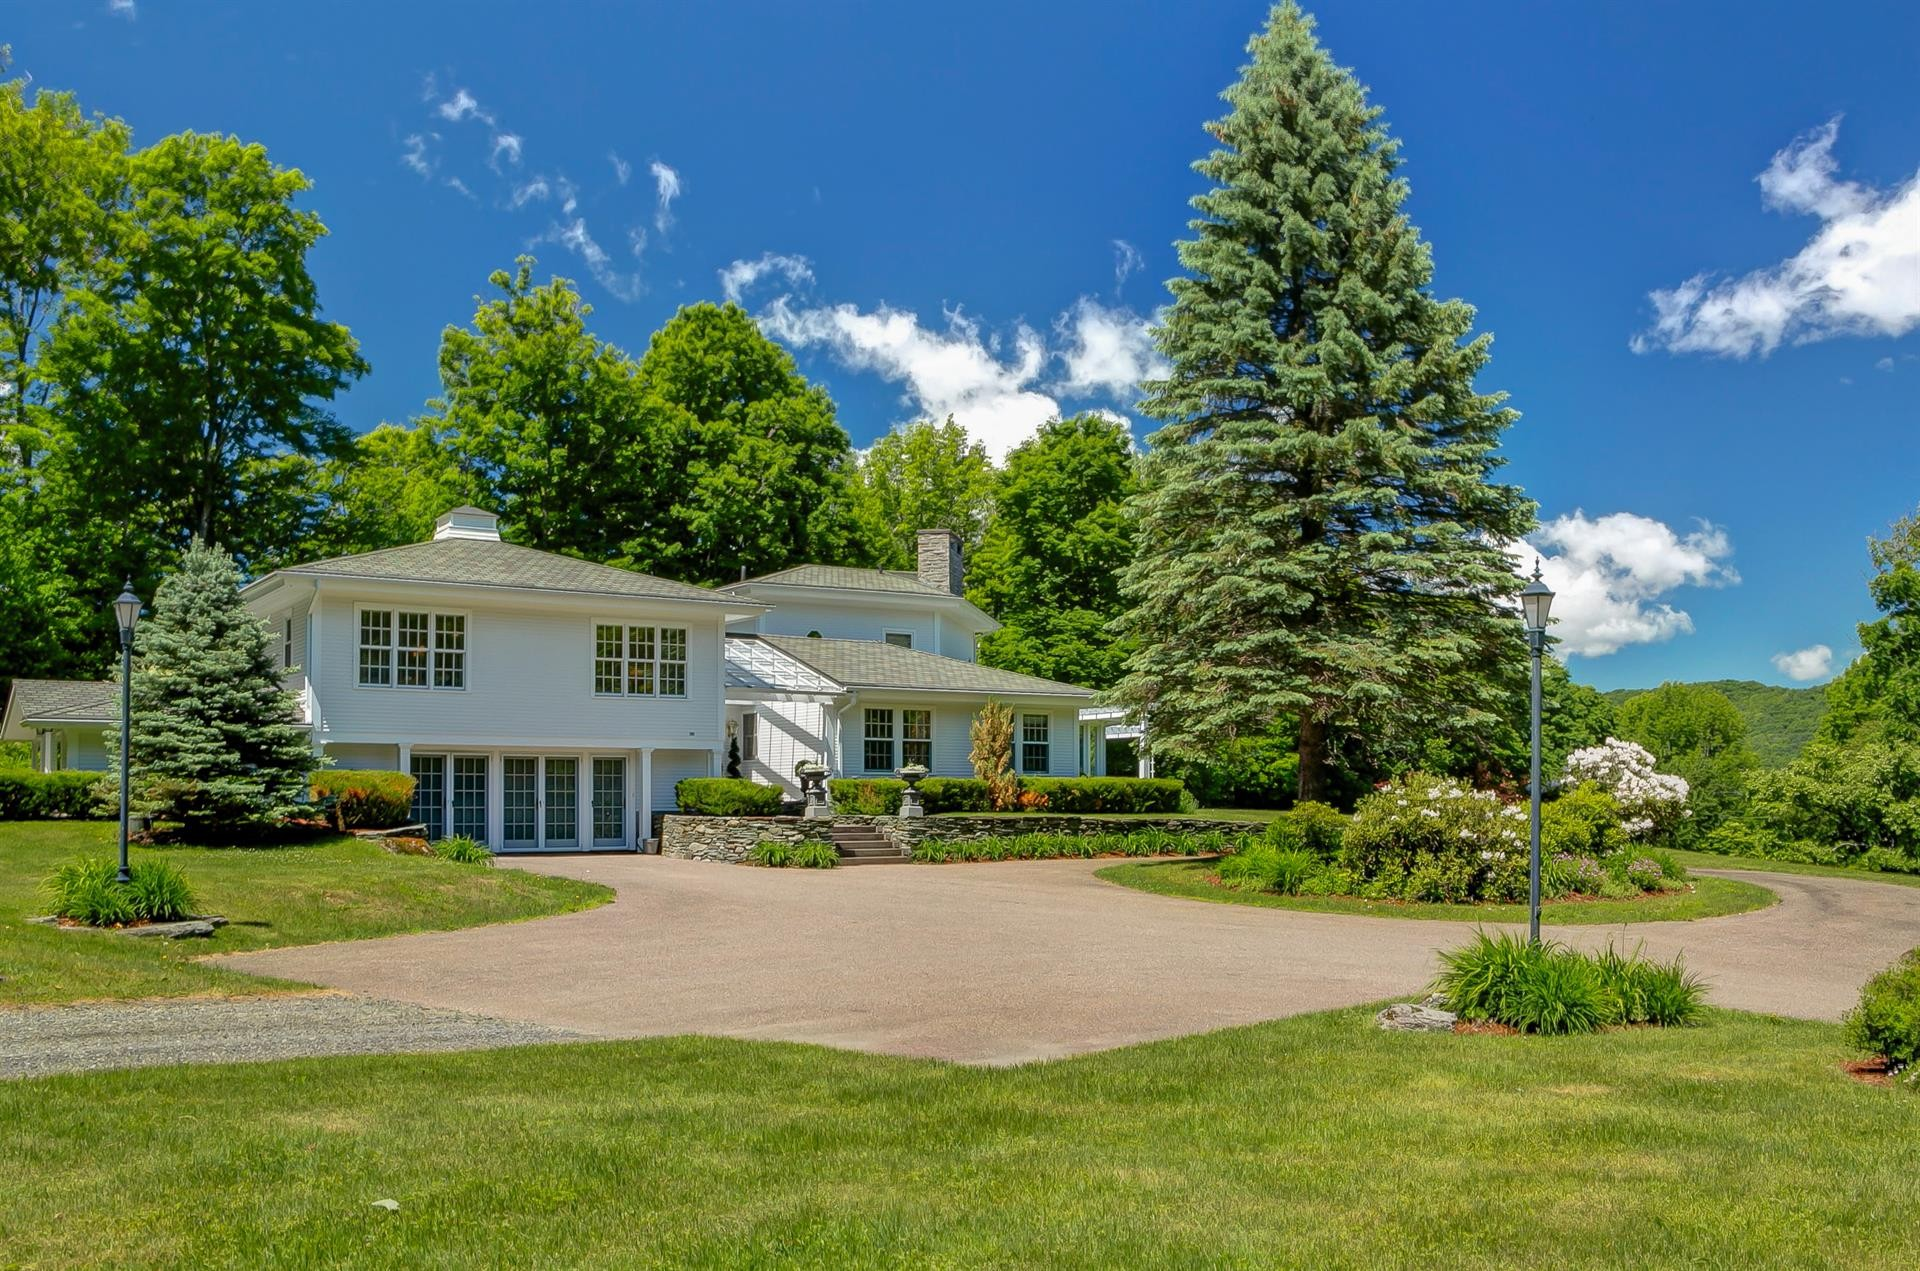 maple hill a luxury single family home for sale in warren, vermont property id vt0846 christie s international real estate